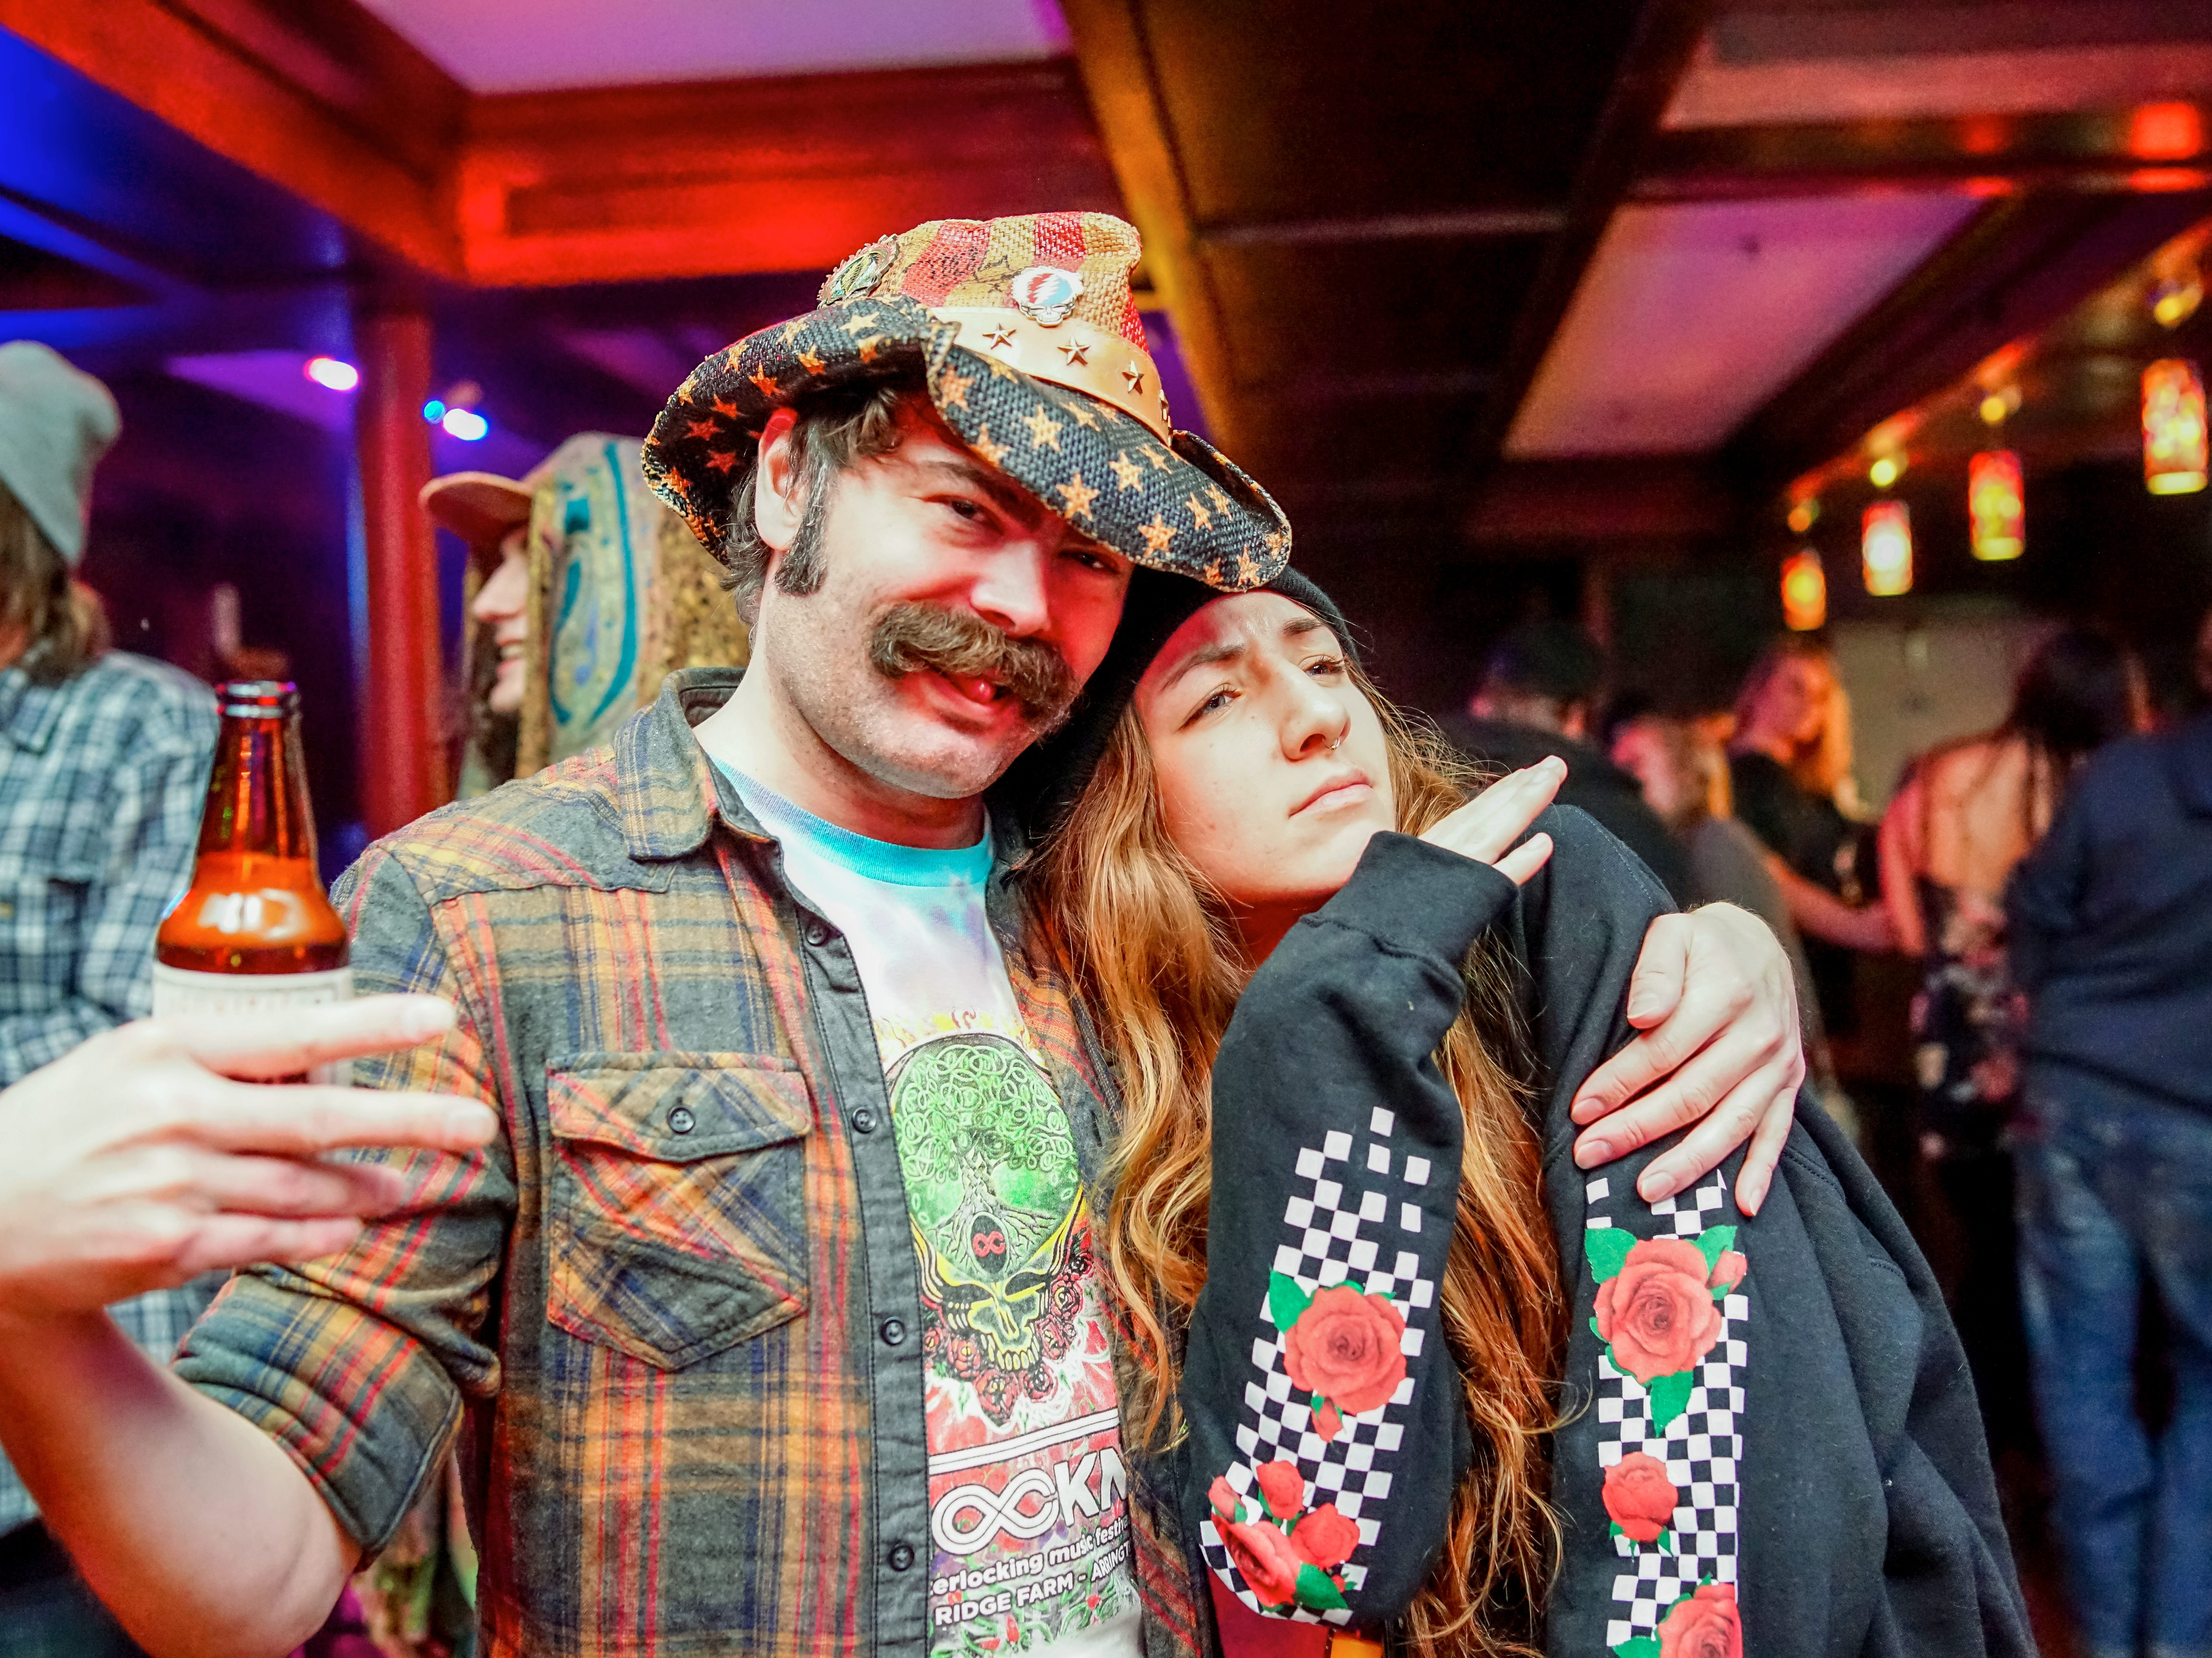 Josh Seburt, 35, and Bethany Fischer, 23, both of Des Moines, having a blast, Friday, December 28th, at Heroes.